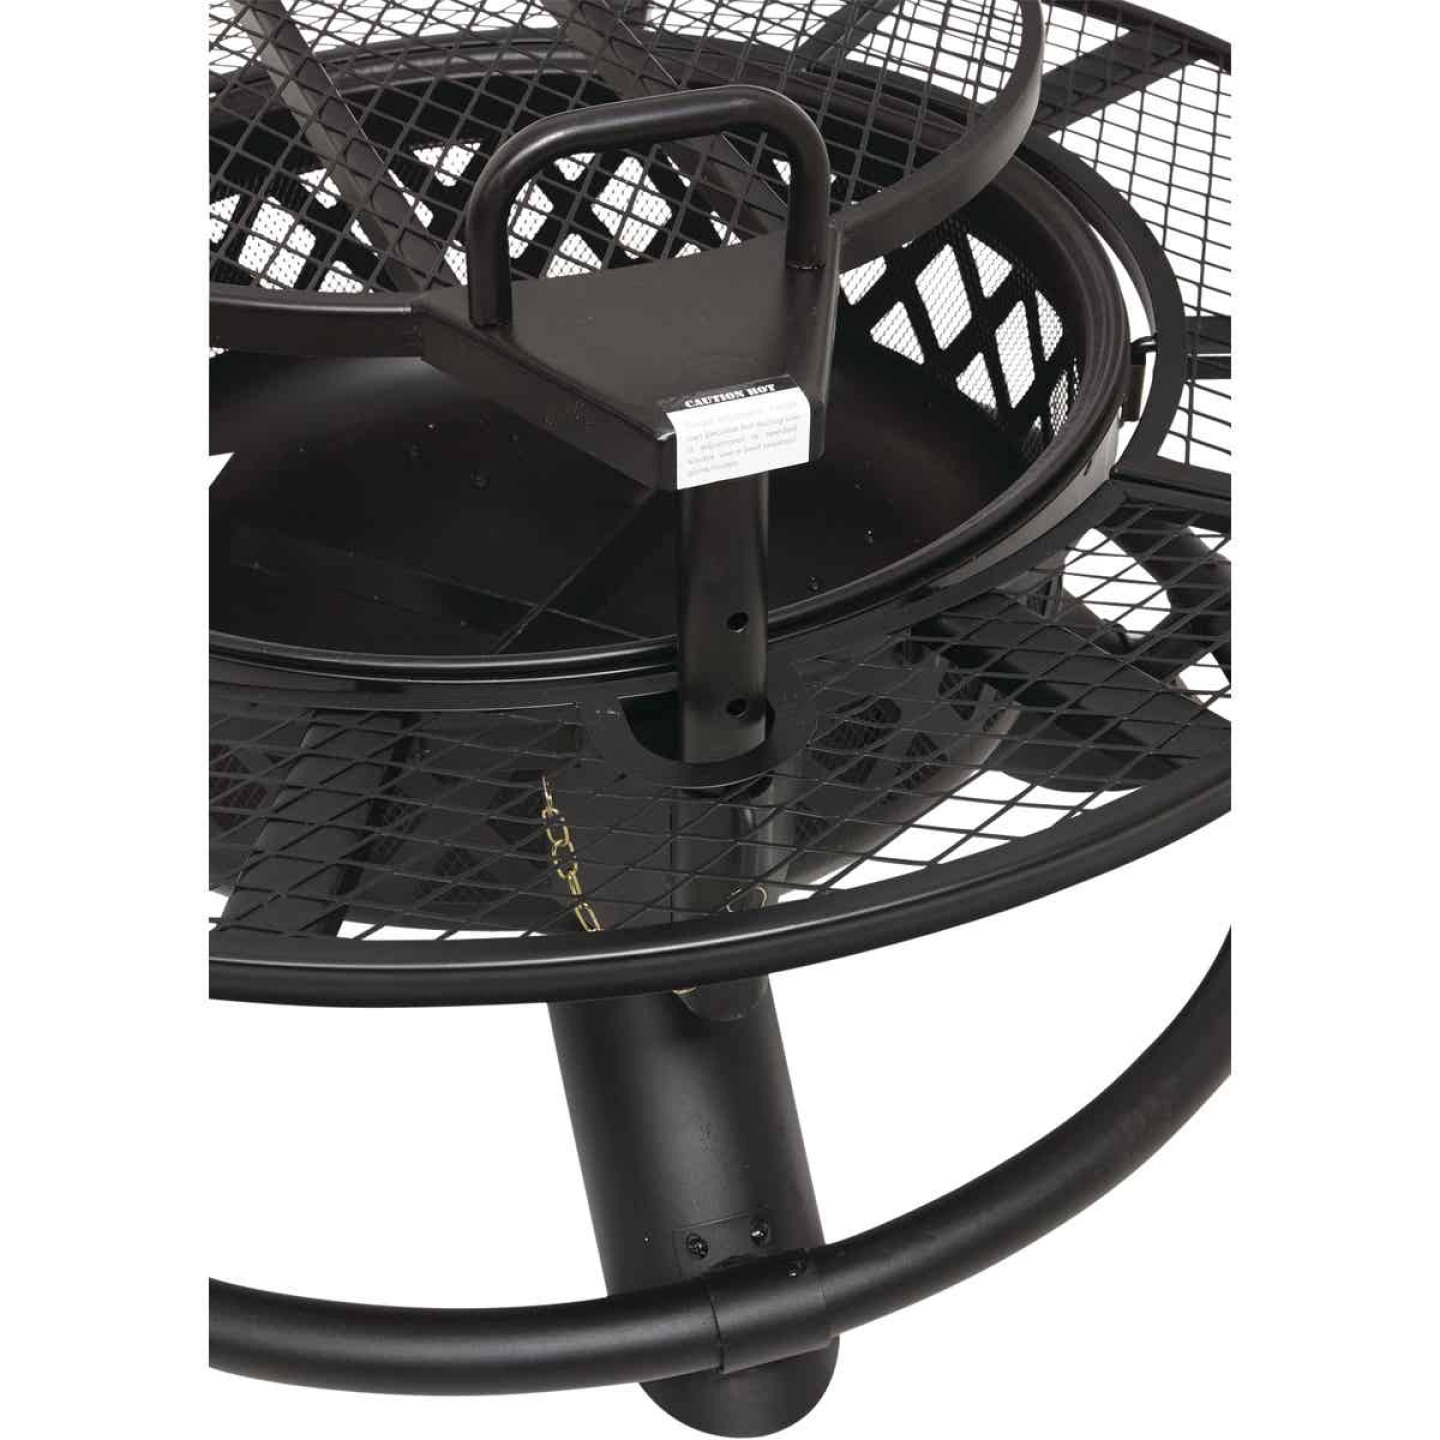 Big Horn 47 In. Camp Black Round Steel Fire Pit Image 6